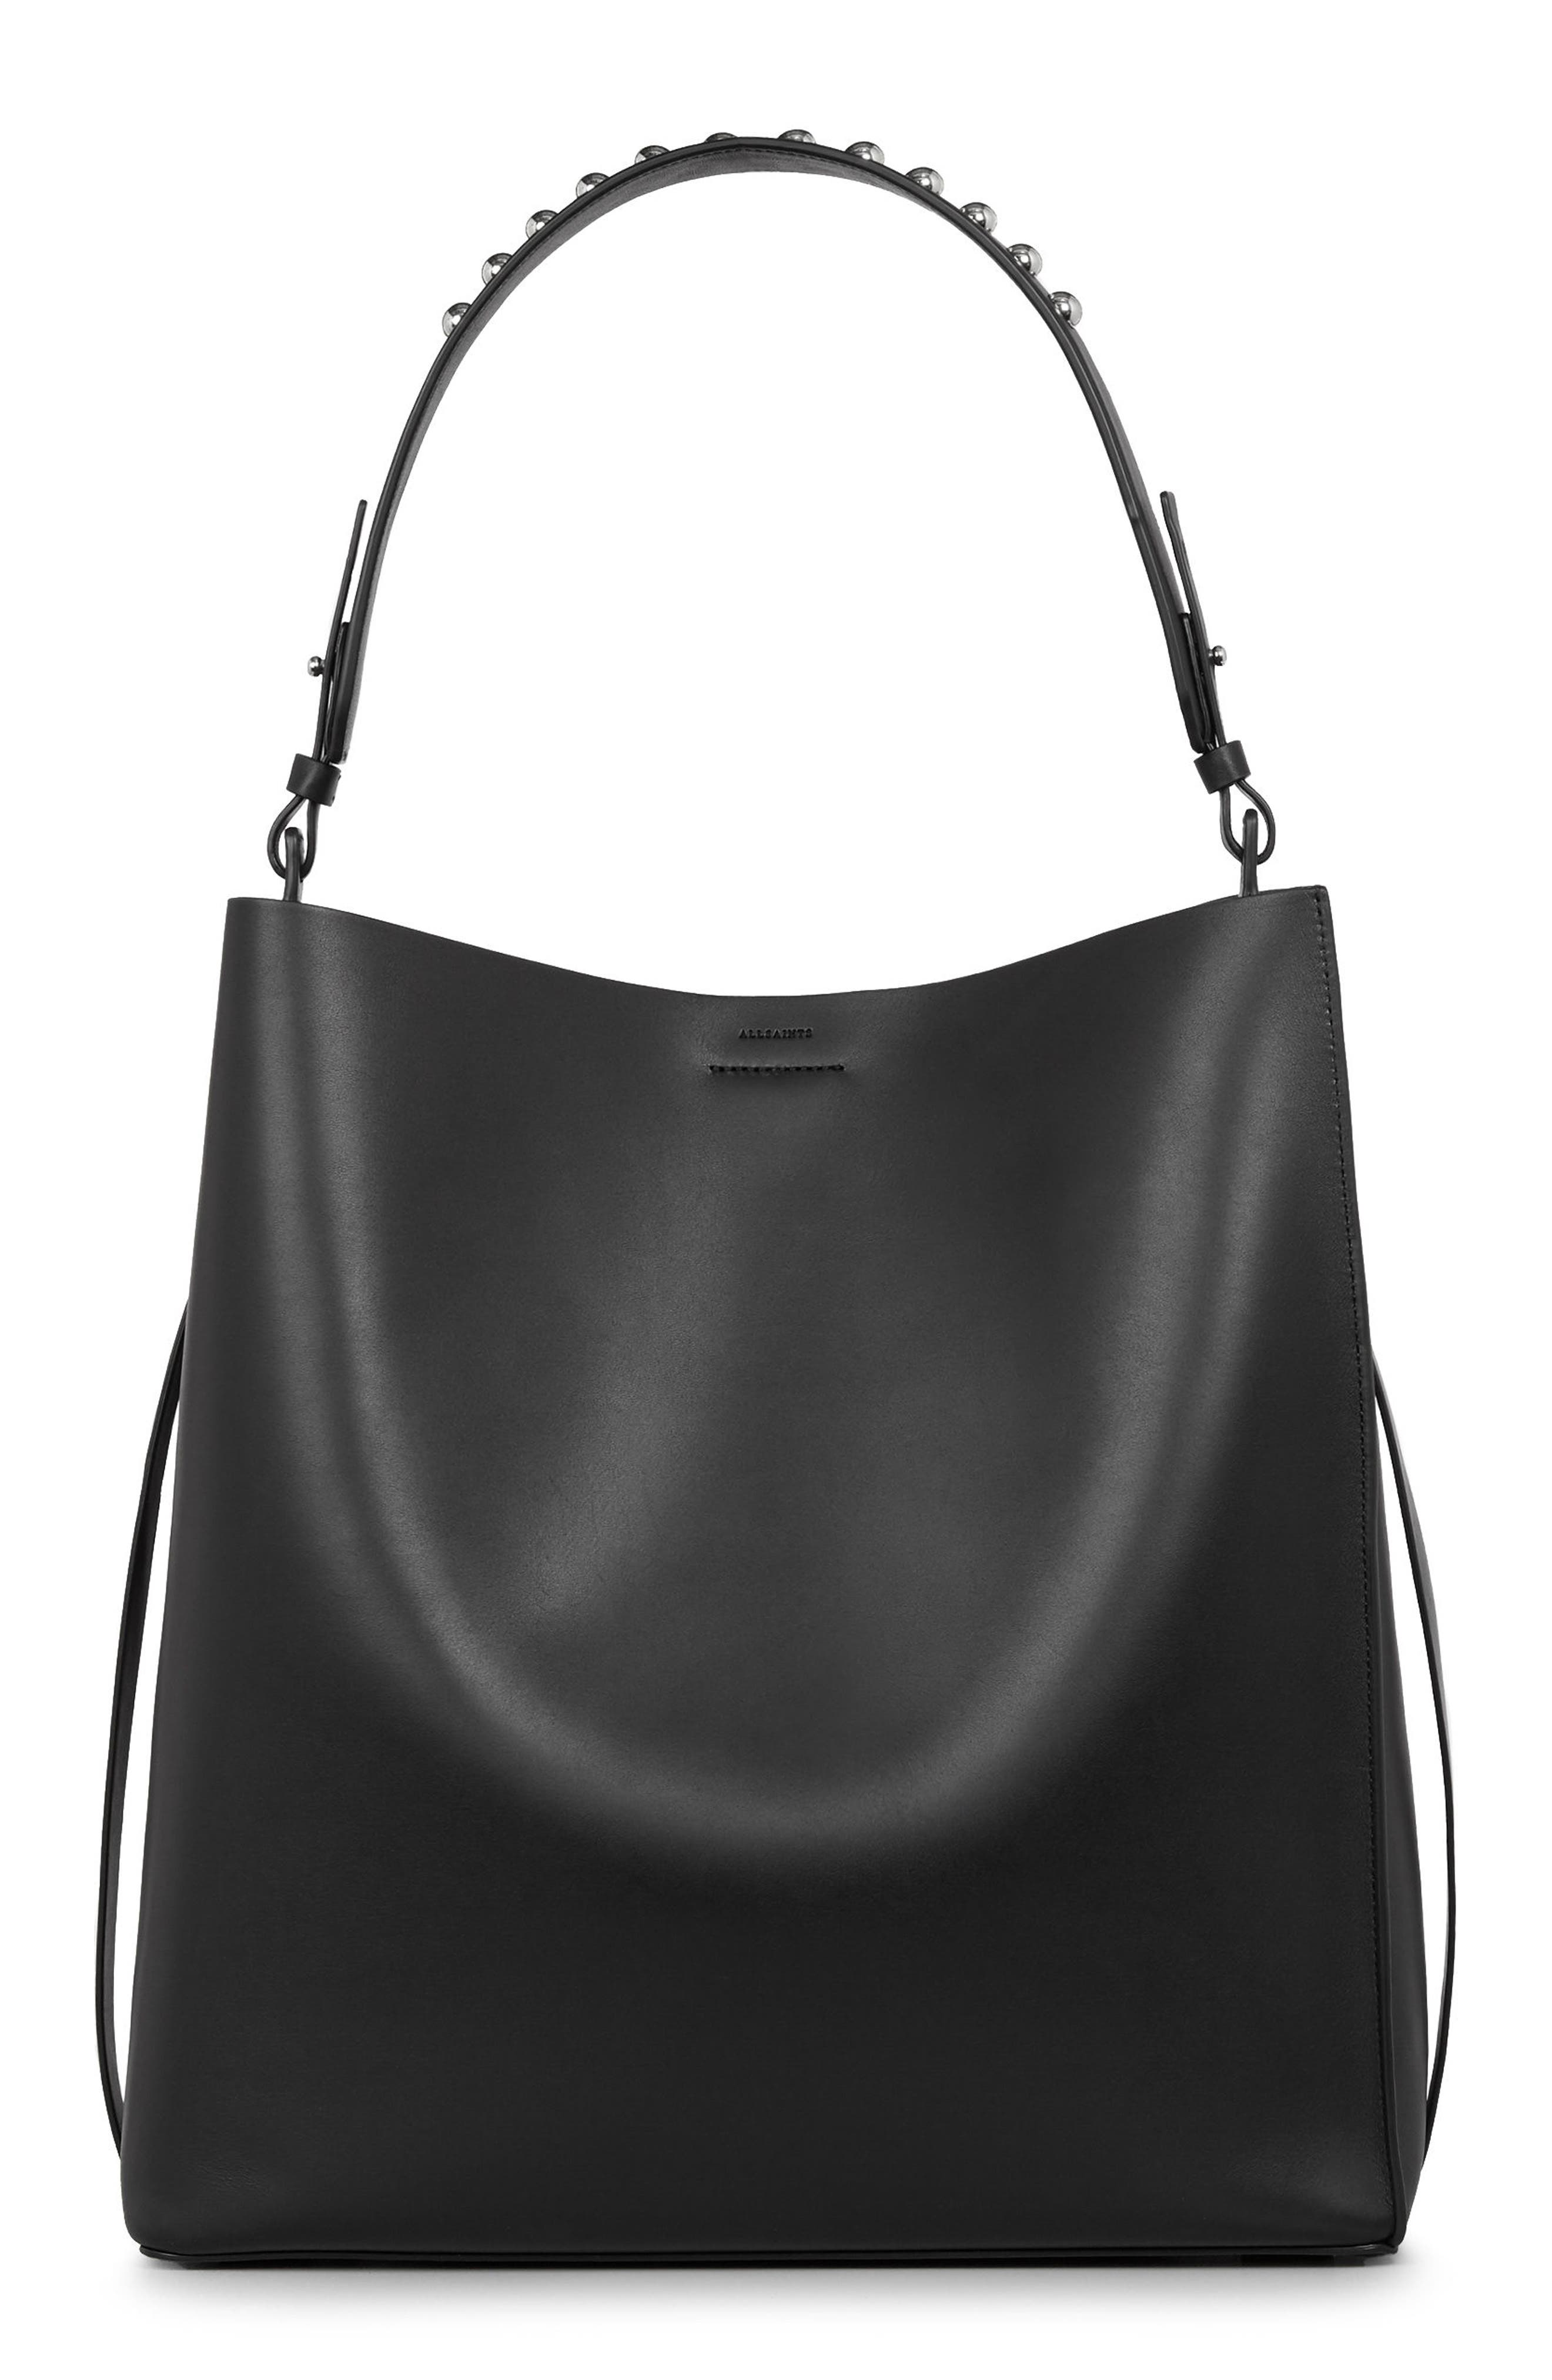 Alternate Image 1 Selected - ALLSAINTS Suzi North/South Leather Tote